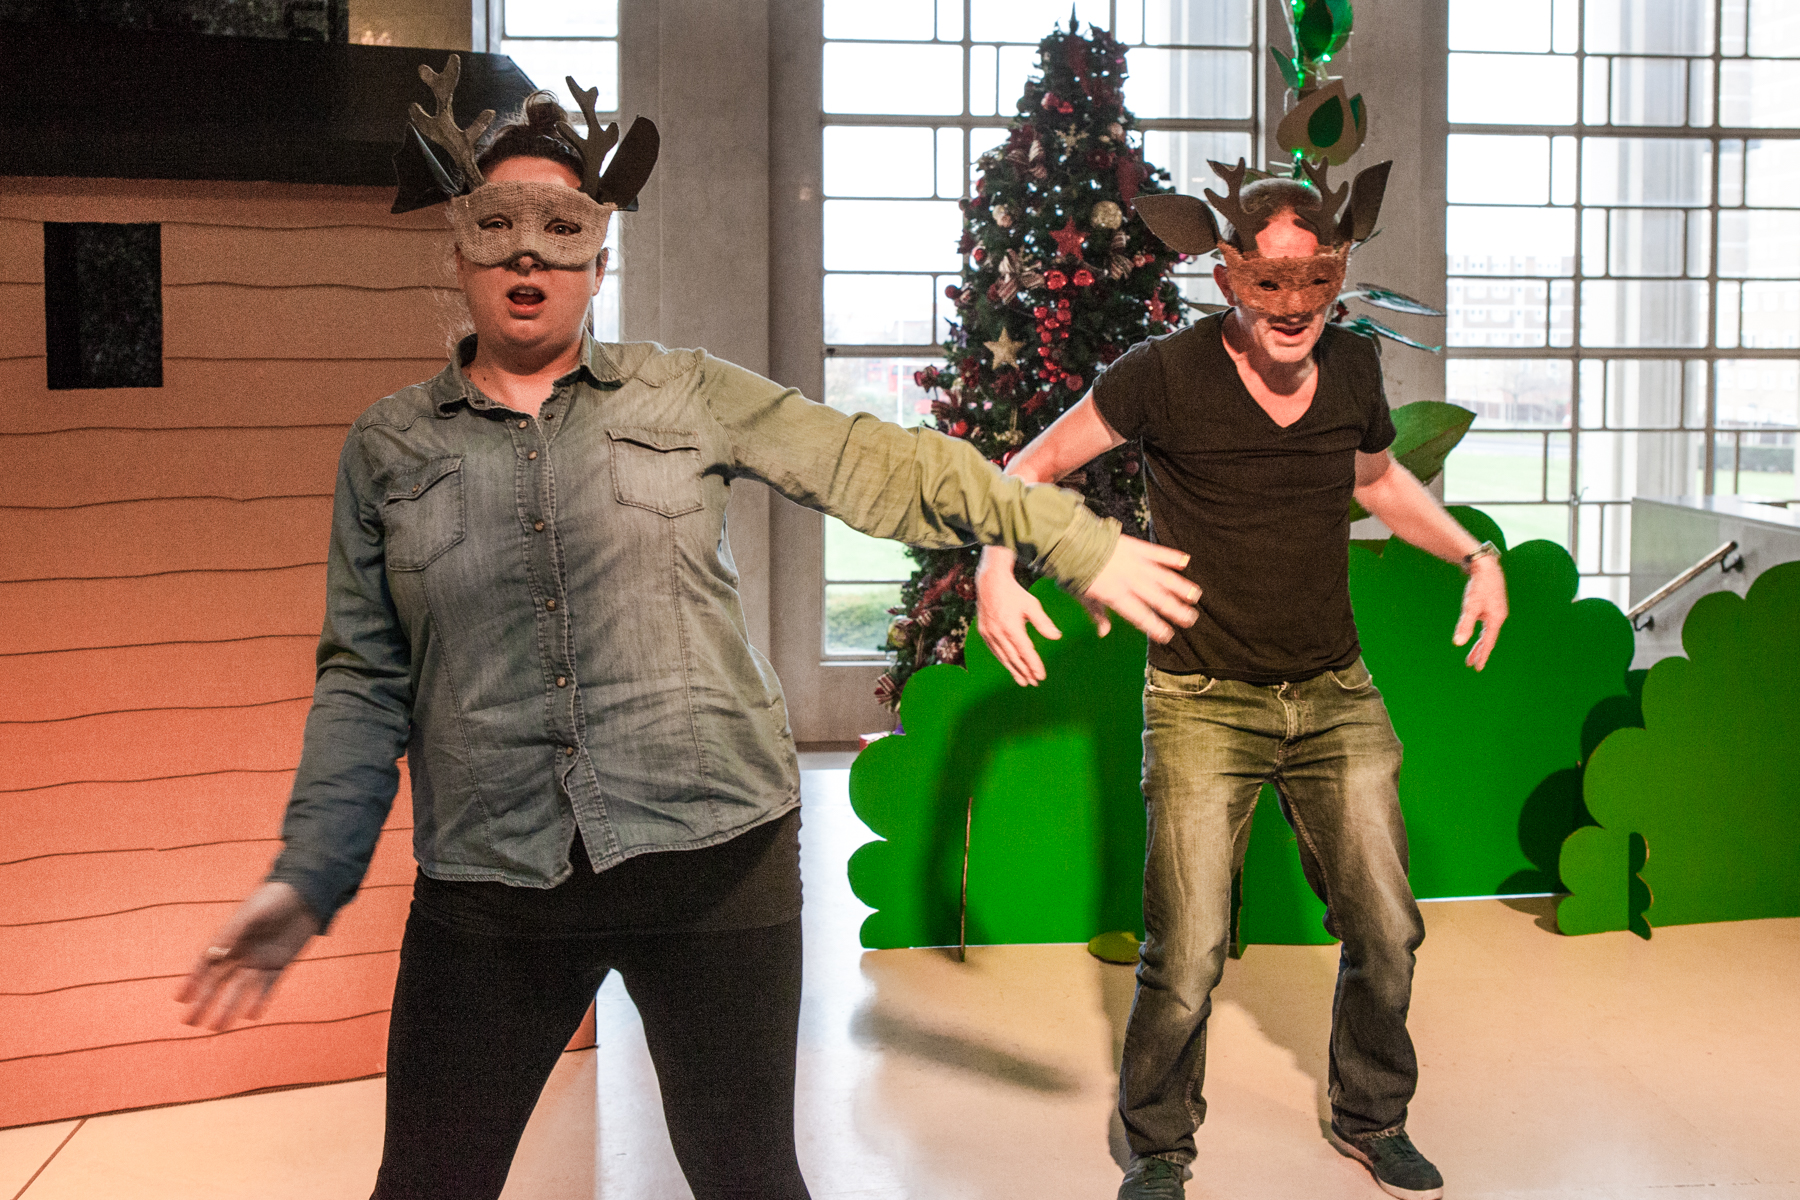 Jack, Jill and the Beanstalk pantomime performed at The Civic Centre